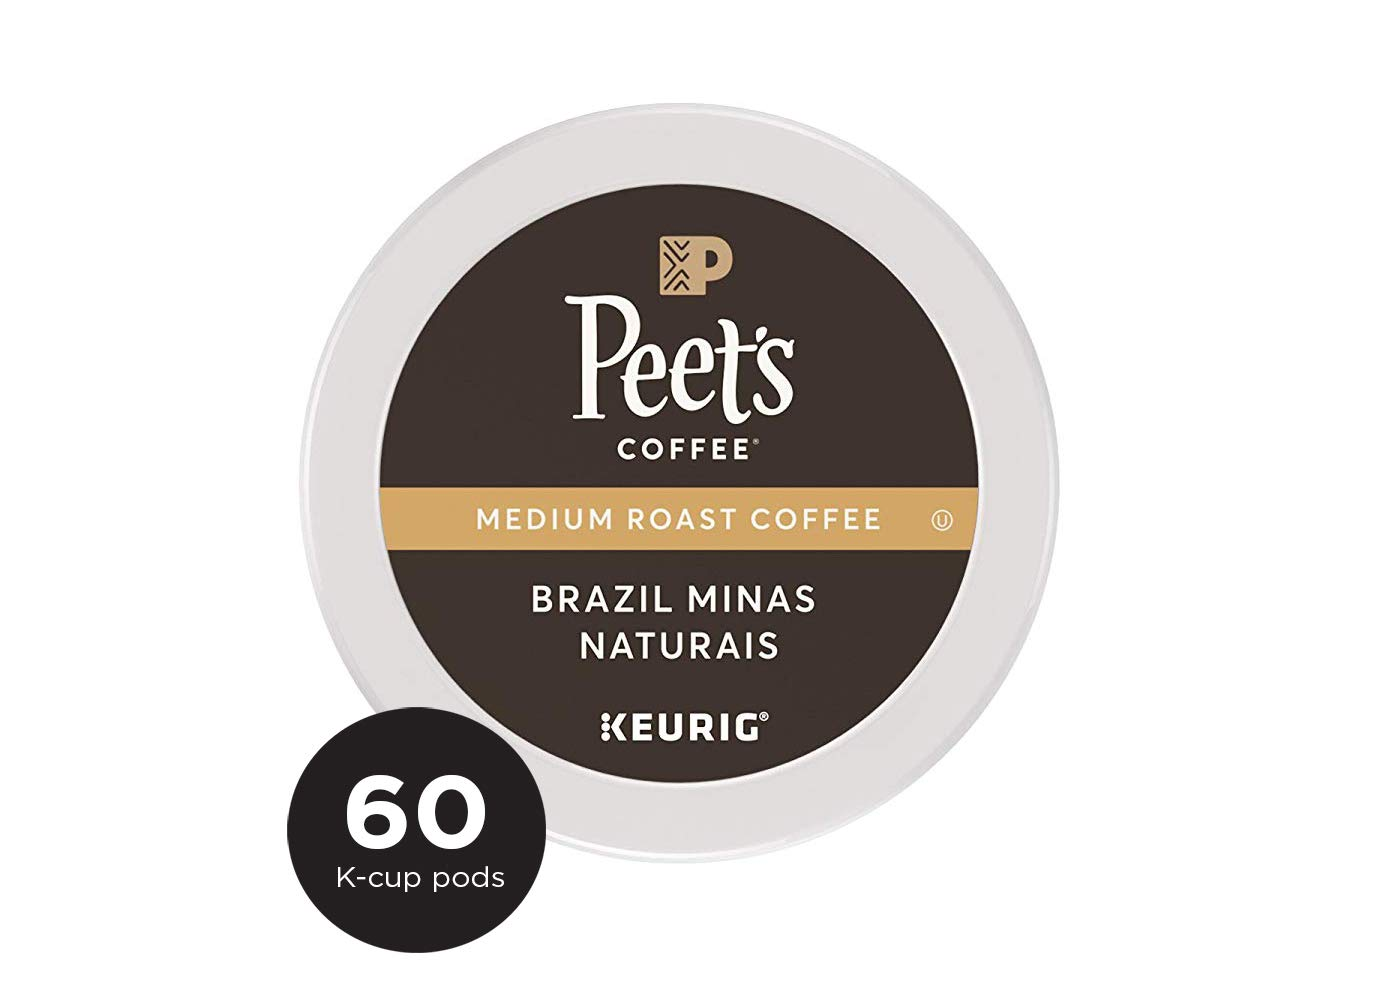 Peet's Coffee K-Cups, Medium Roast Coffee Brazil Minas Naturais, 60ct (pack of 6 x 10ct kcups) by Peet's Coffee